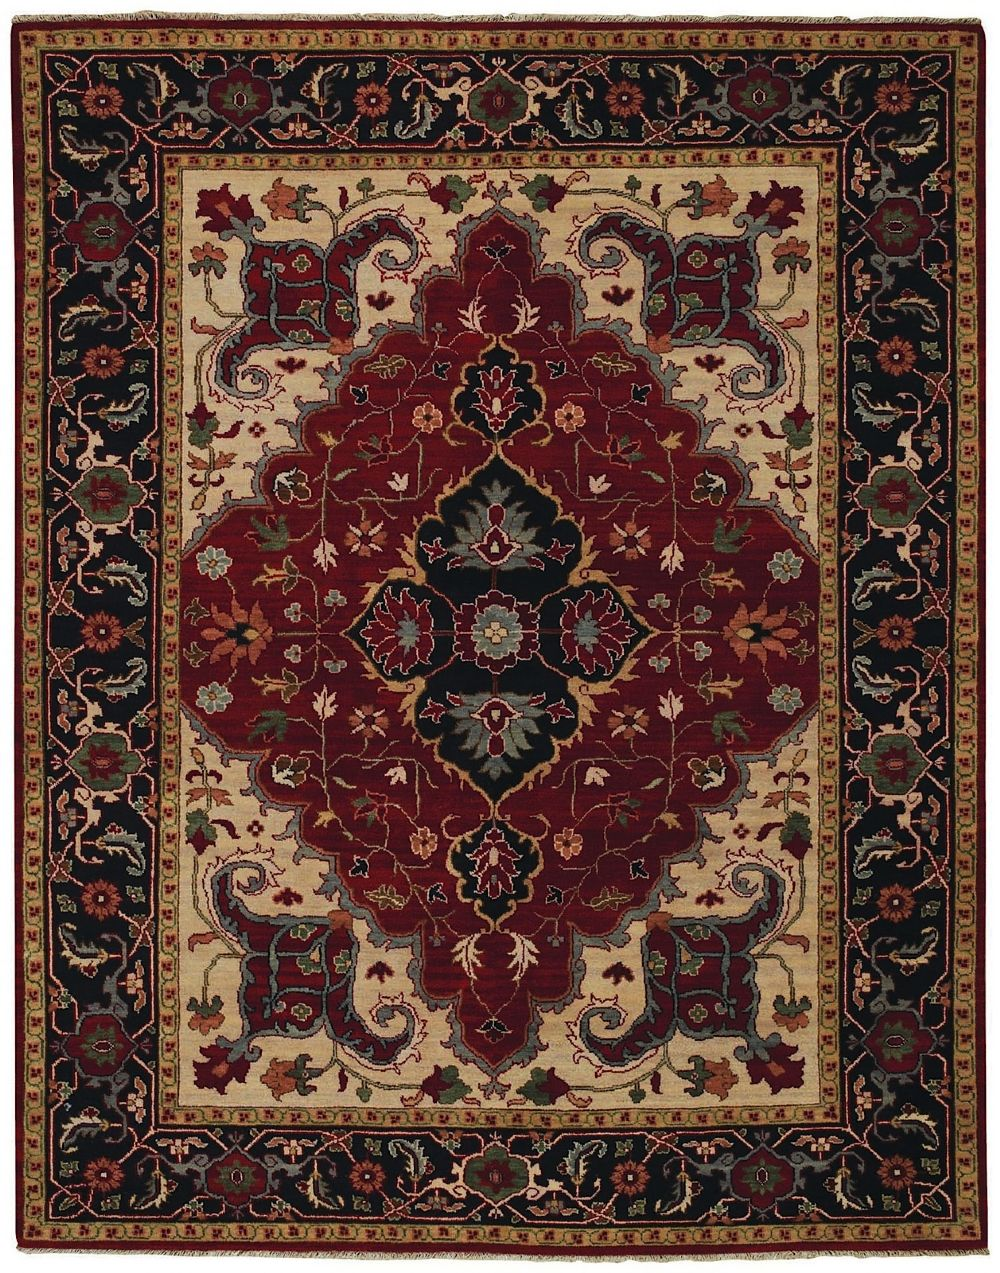 capel bellevelle-tabriz european area rug collection